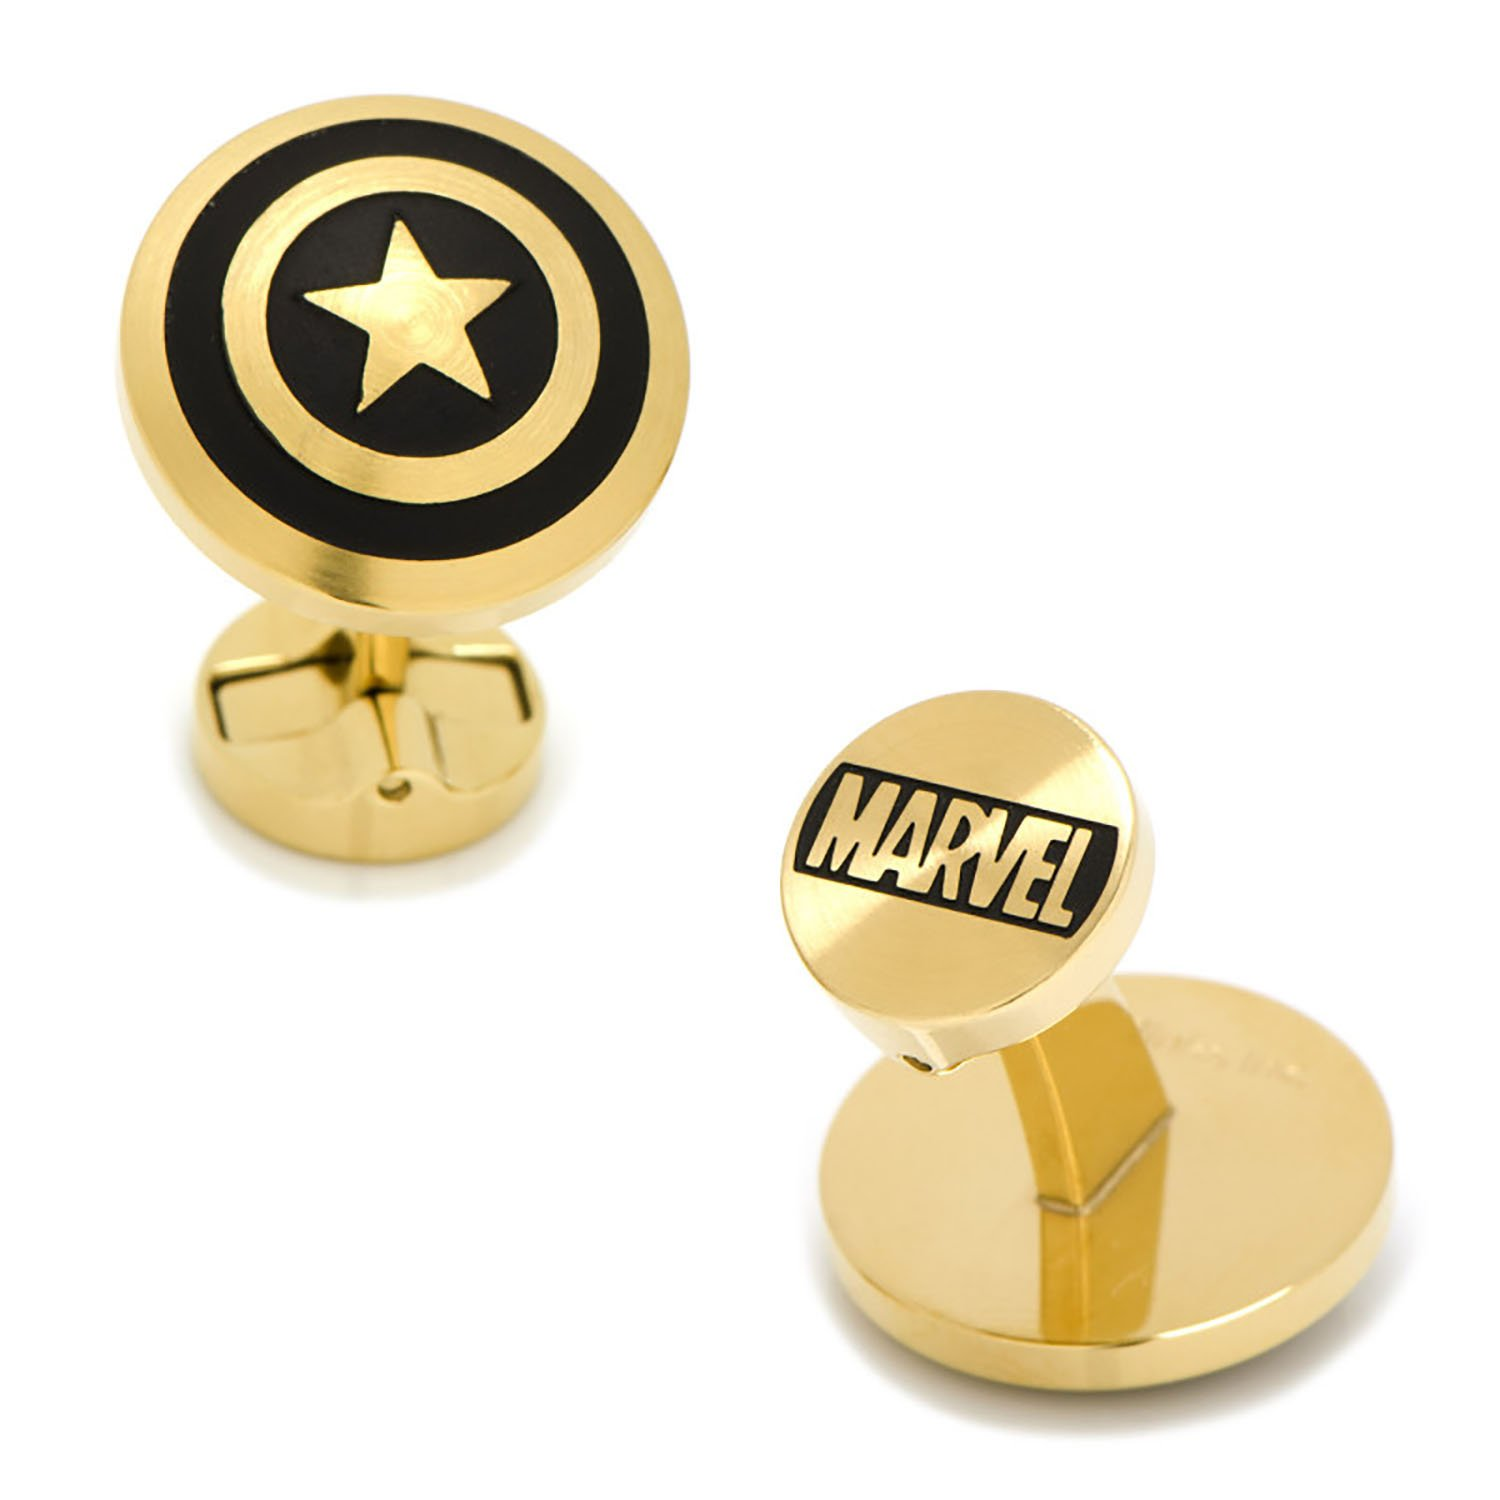 Stainless Steel Black and Gold Captain America Cufflinks by Marvel Cufflinks